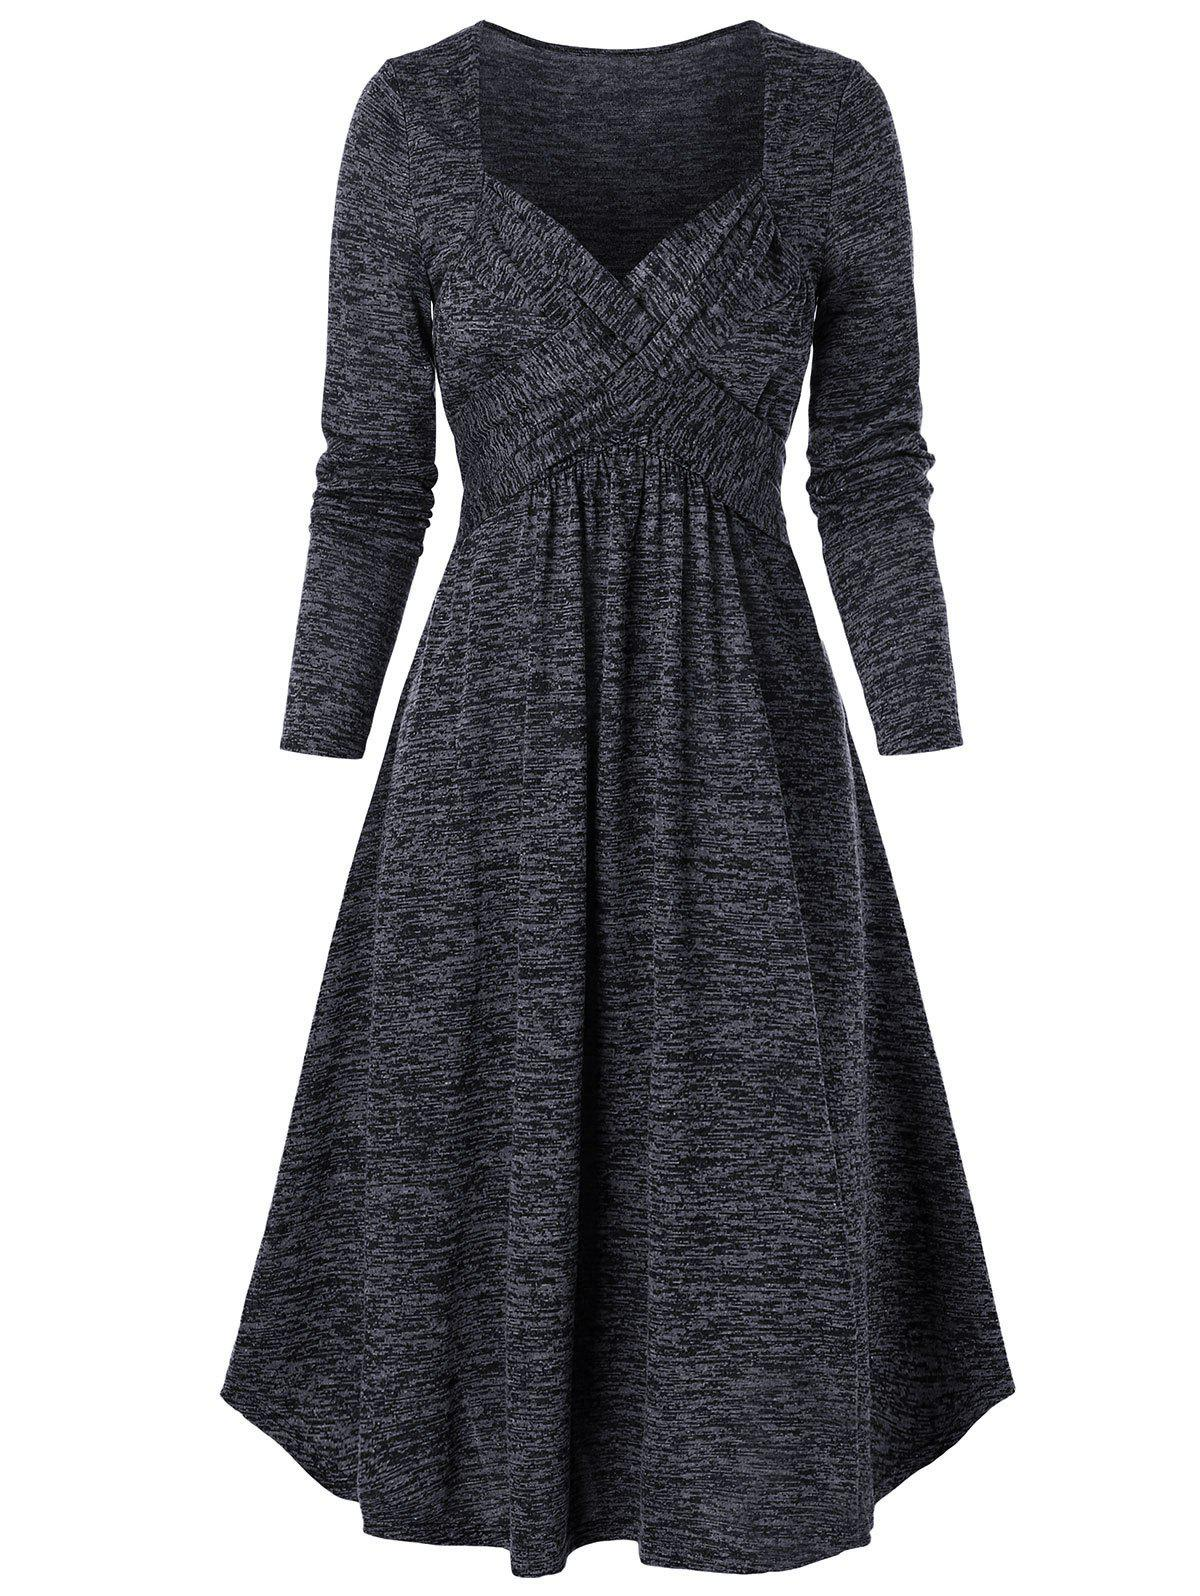 Space Dye Print Crossover Long Sleeve Dress - CARBON GRAY S